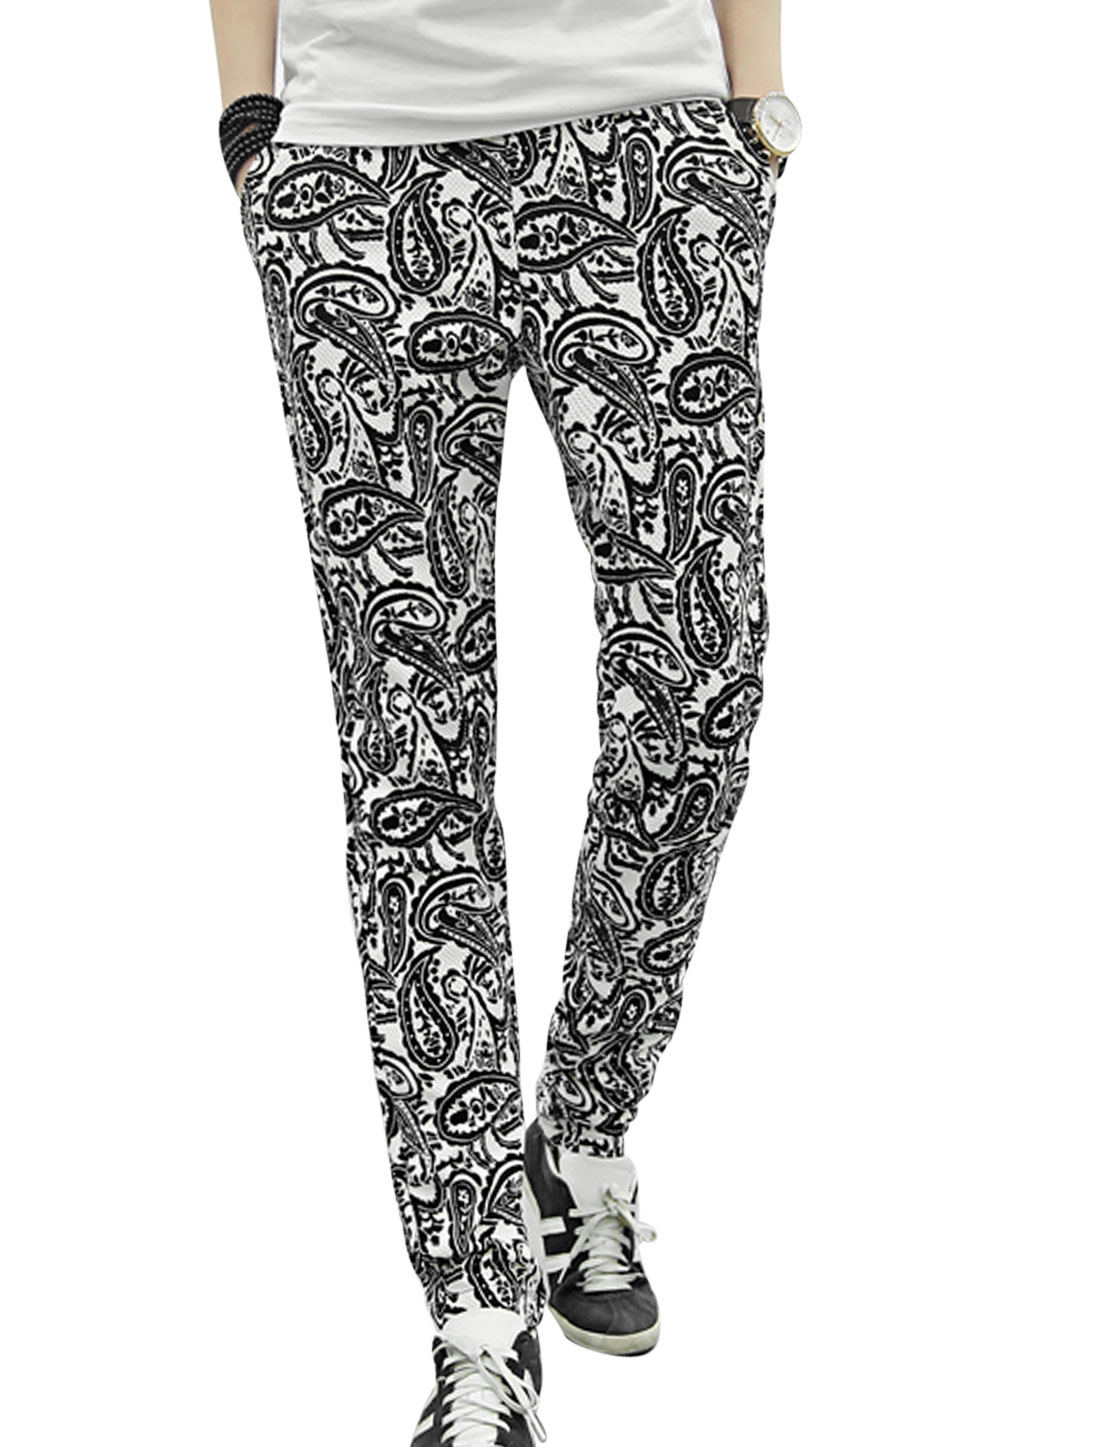 Men Welt Hip Pockets Cuffed All Over Paisleys Print Casual Pants White W30